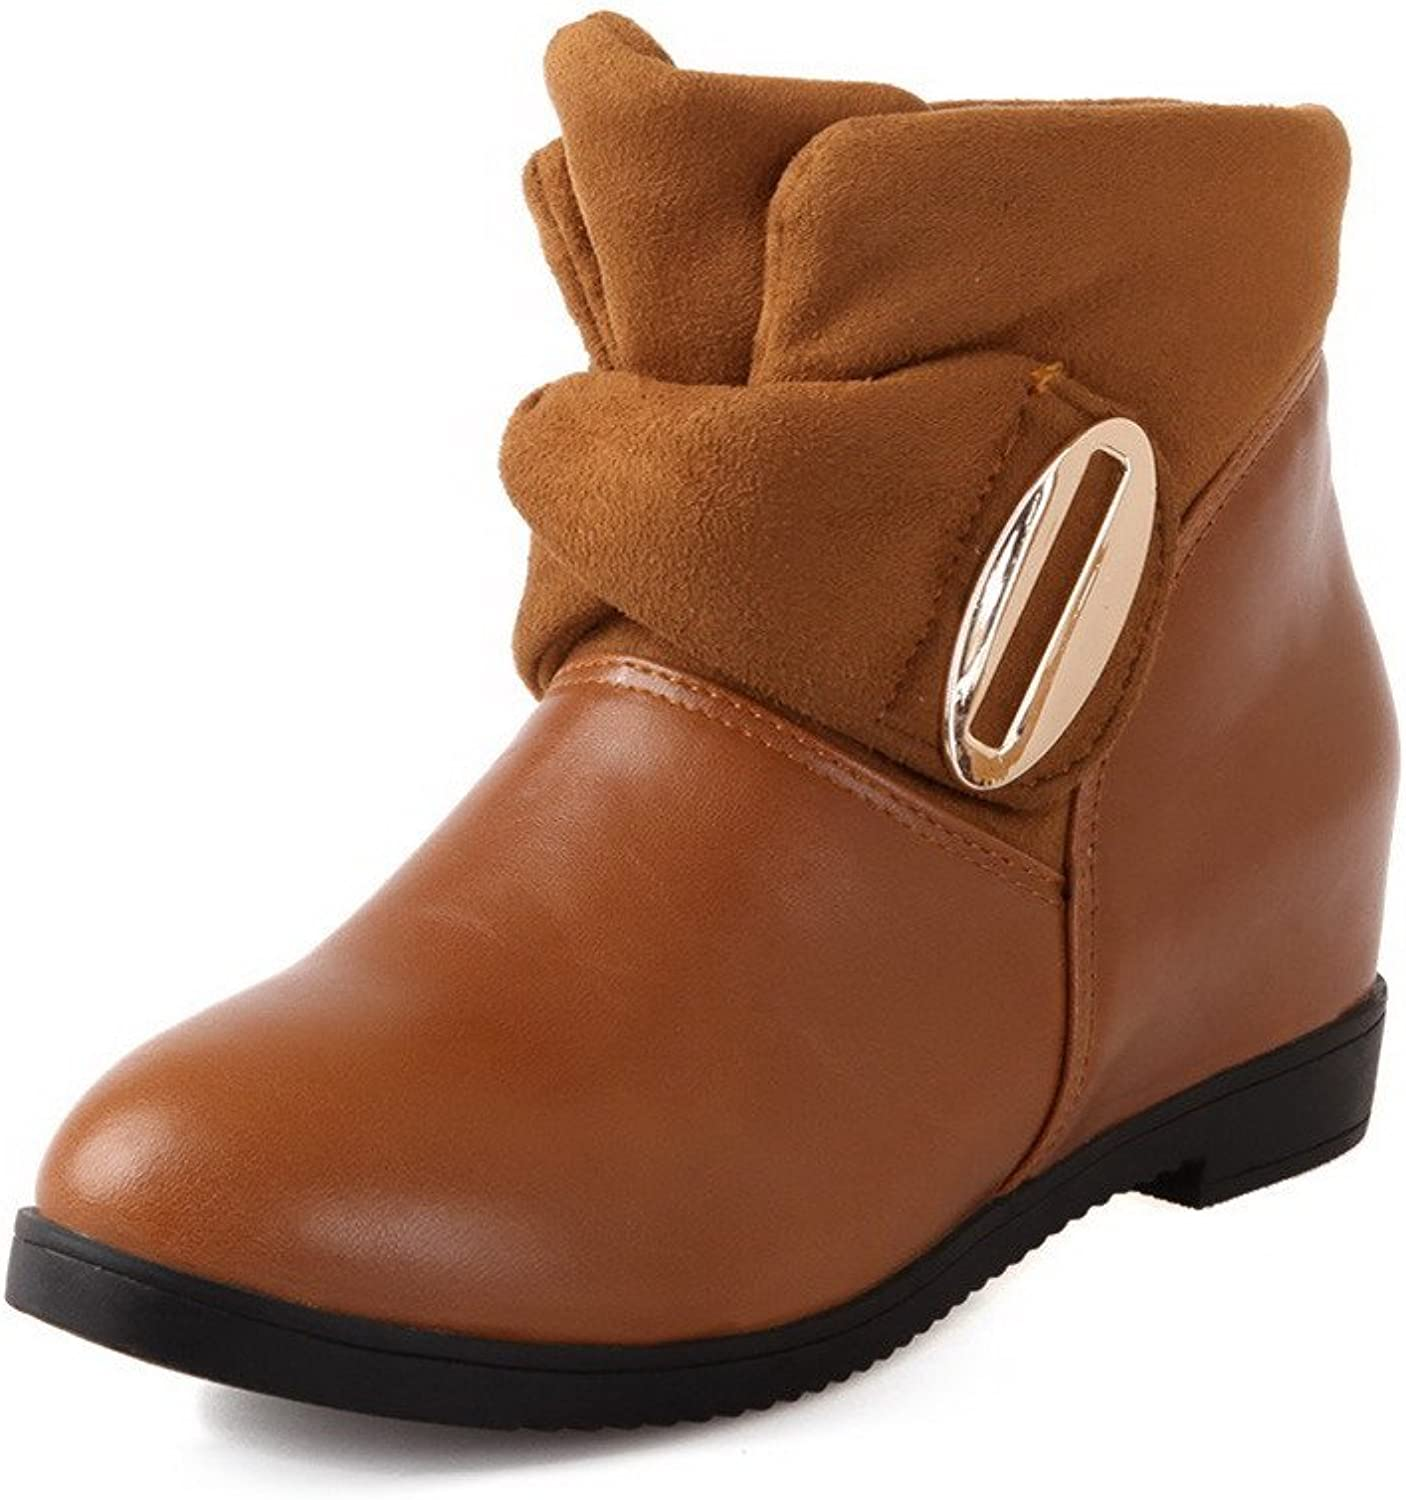 WeenFashion Women's Kitten-Heels Solid Closed Round Toe Soft Material Pull-On Boots